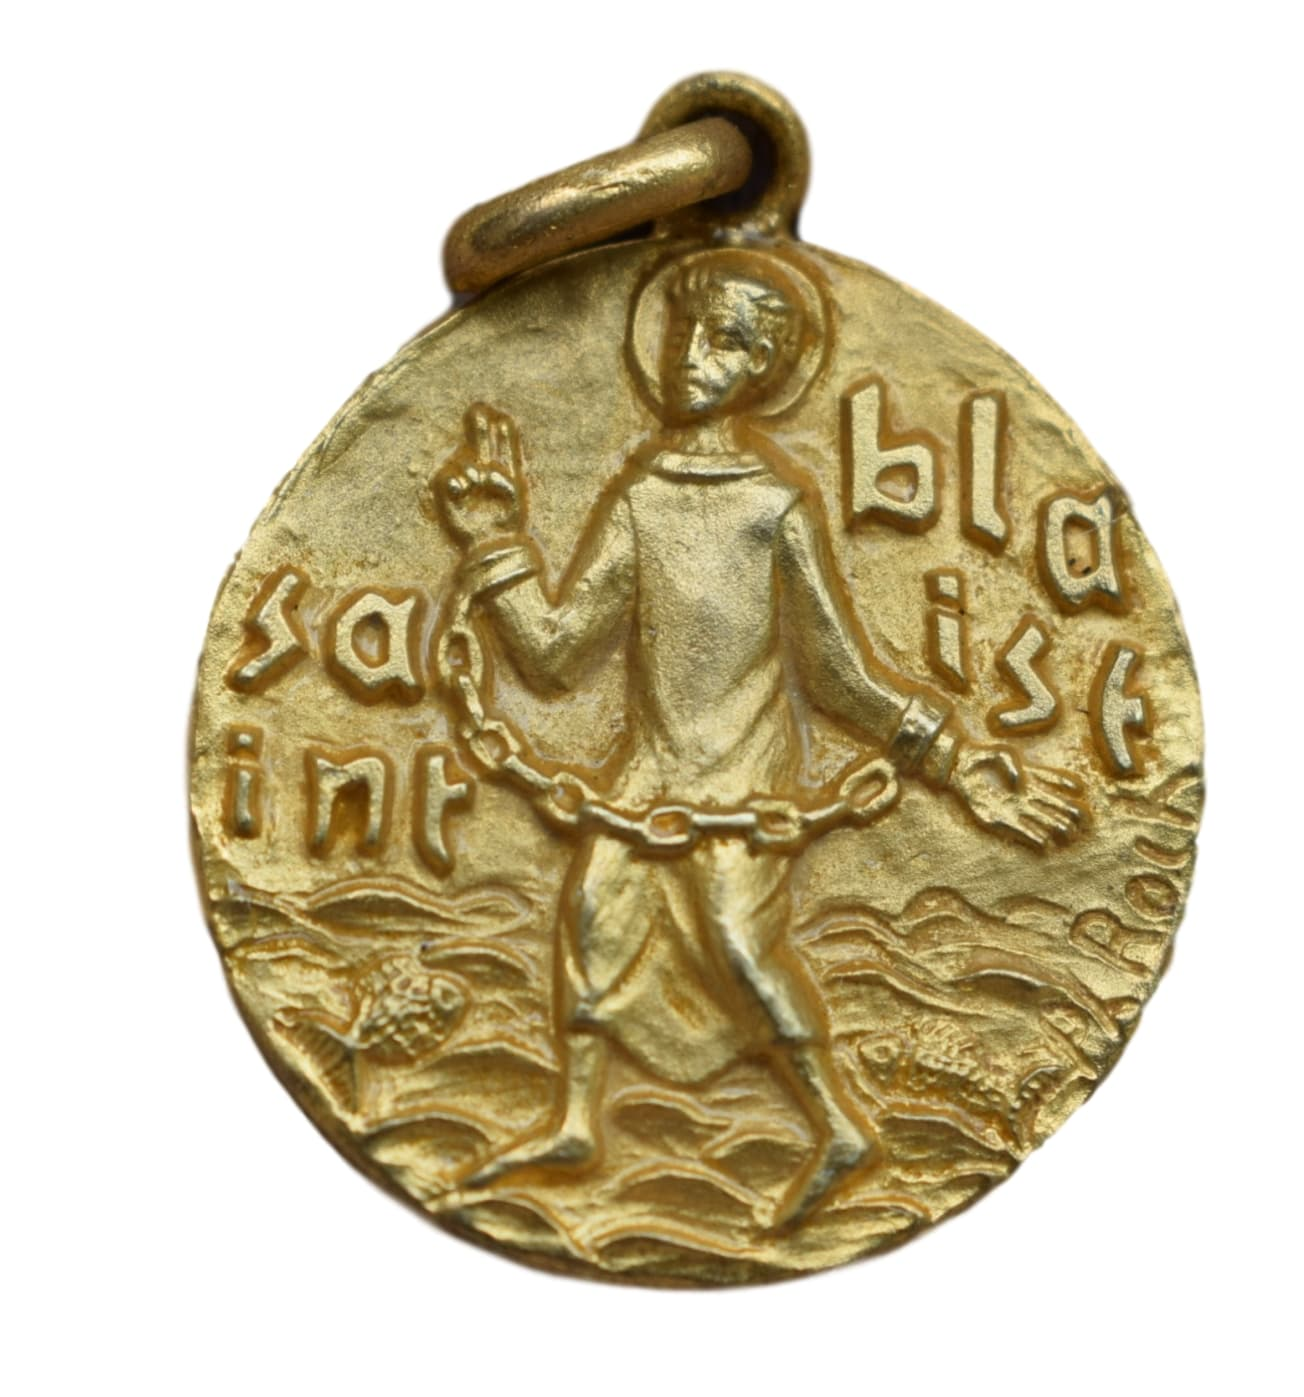 Saint Blaise Medal - French Religious Vintage Gold Medal Pendant Charm by Philippe Roch - Saint Patron of Throat Ailments